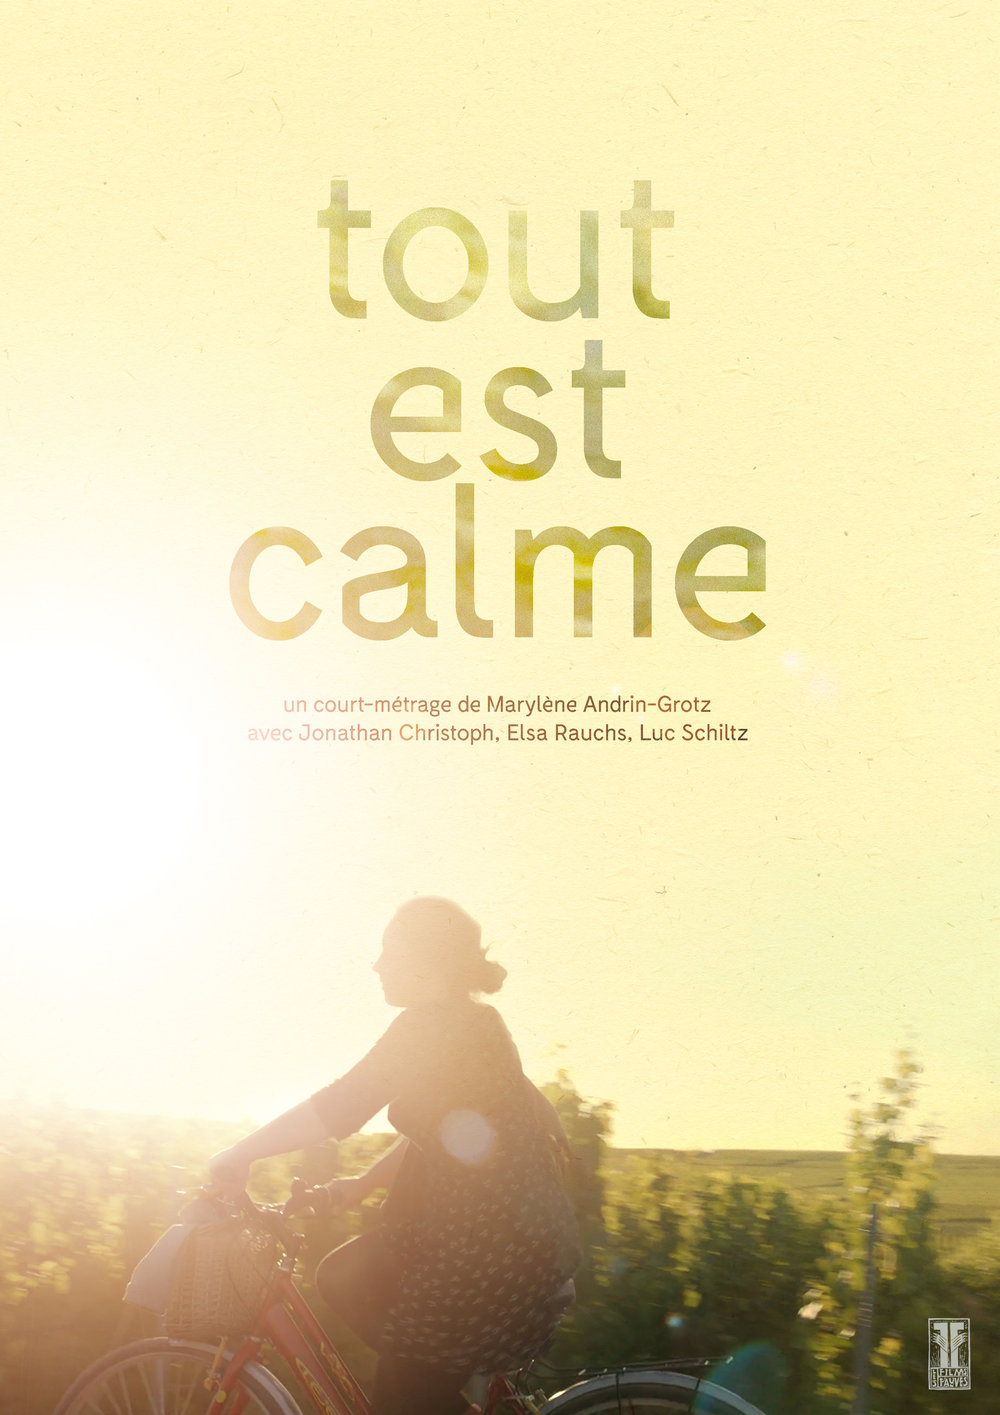 TOUT EST CALME / ALL IS CALM - Directed by Marylène ANDRIN-GROTZScript by Marylène ANDRIN-GROTZWith Jonathan CHRISTOPH, Elsa RAUCHS & Luc SCHILTZYear: 2016Original Version: FrenchGenre: Drama, SocialRunning Time: 19minProduction companies: LES FILMS FAUVES (LU)